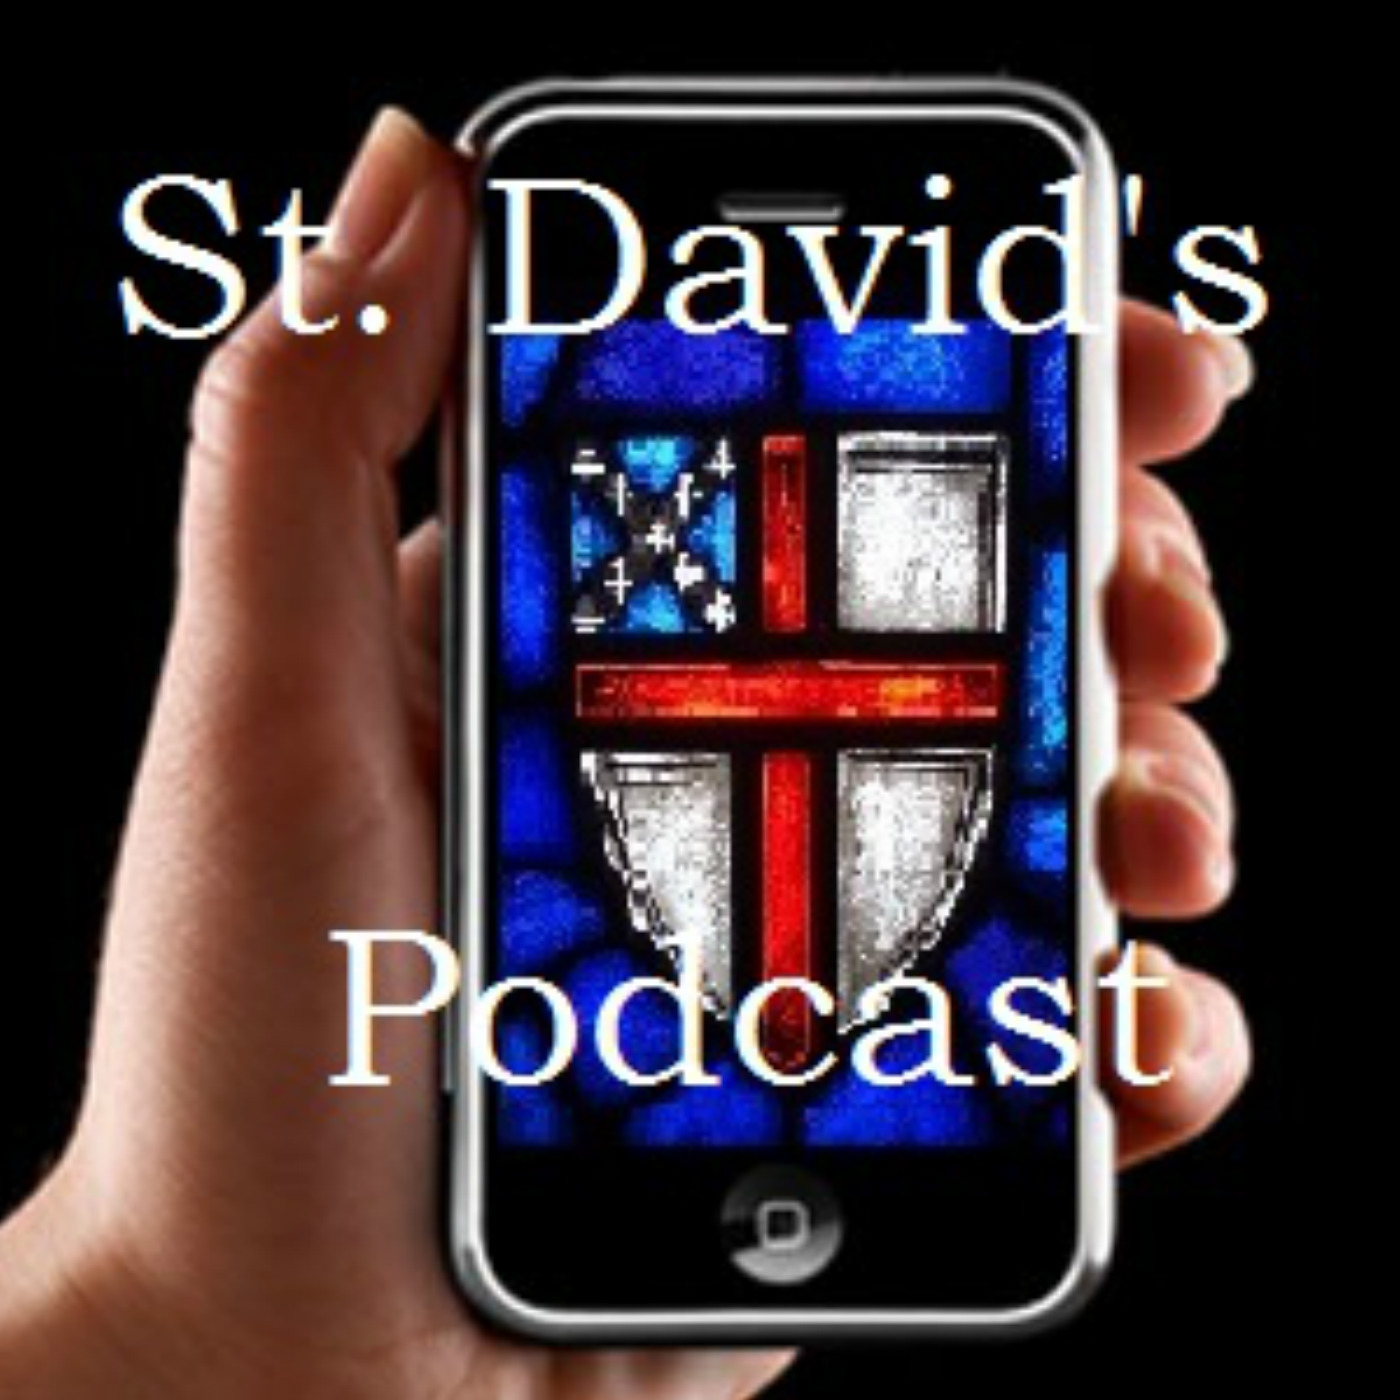 St. David's Sermon Podcast